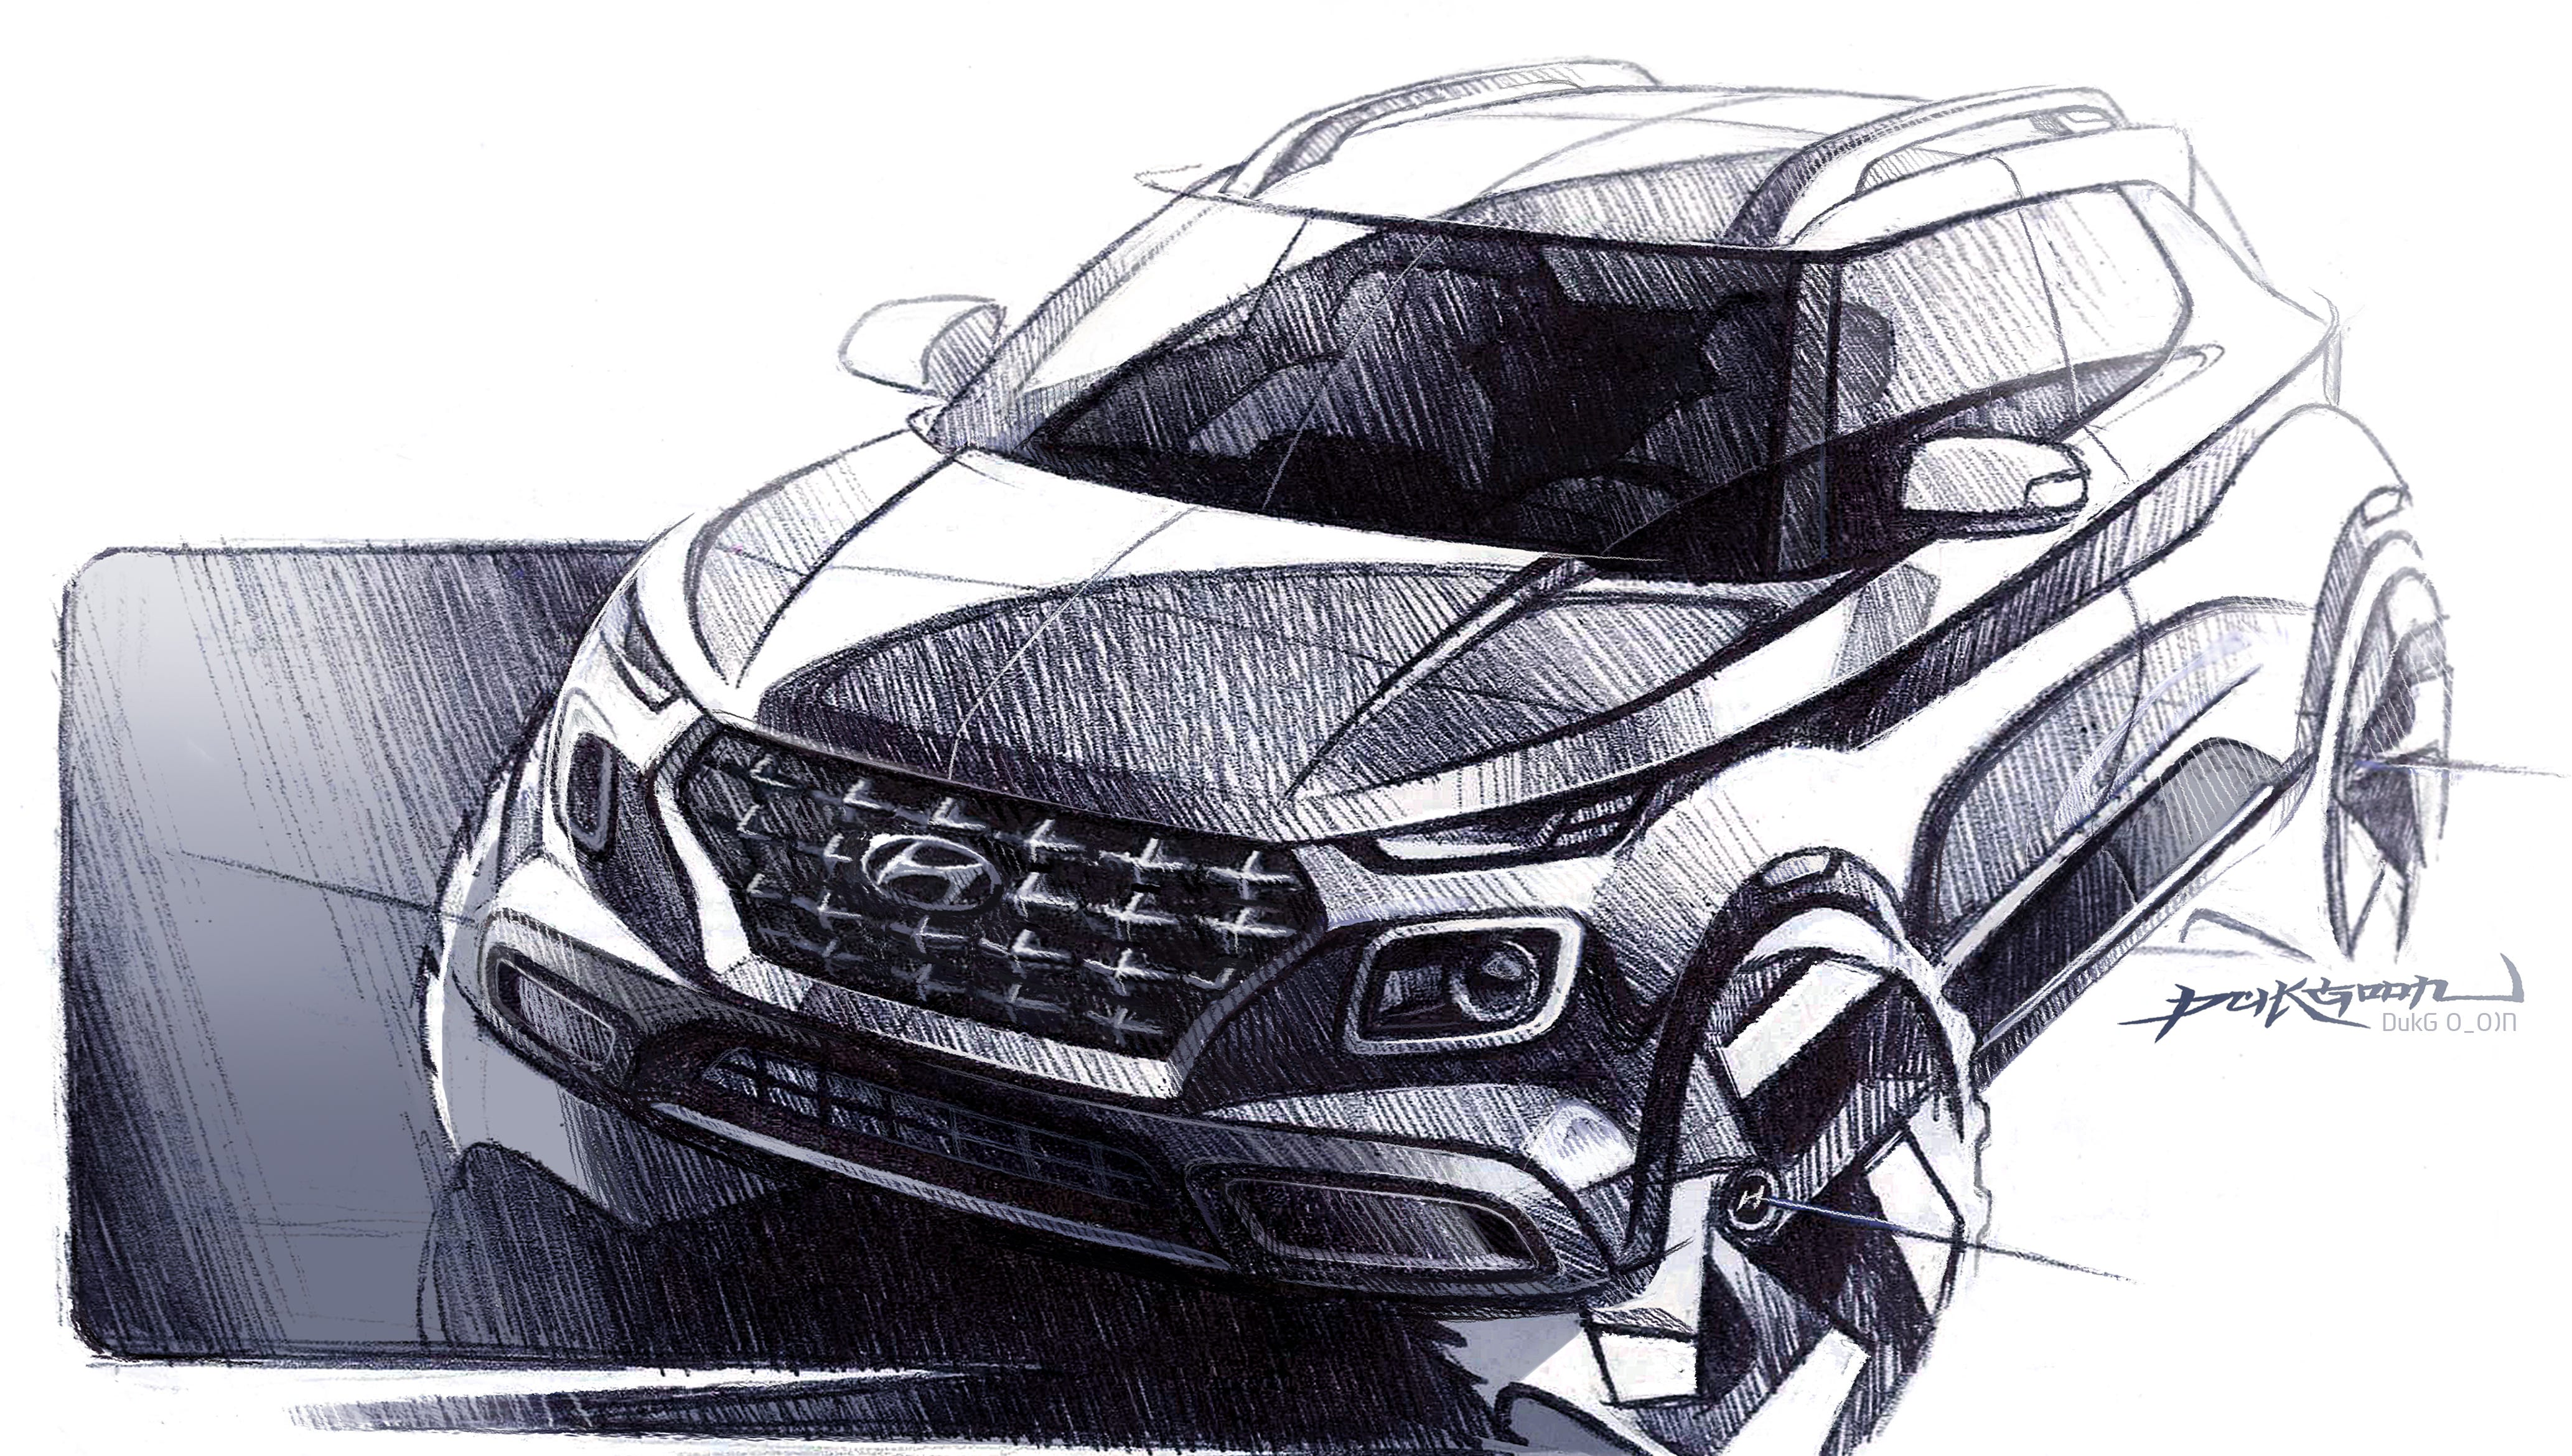 At the New York Auto Show, Hyundai introduced its 2020 Venue, the latest SUV to join its growing product lineup alongside Kona, Tucson & Santa Fe.